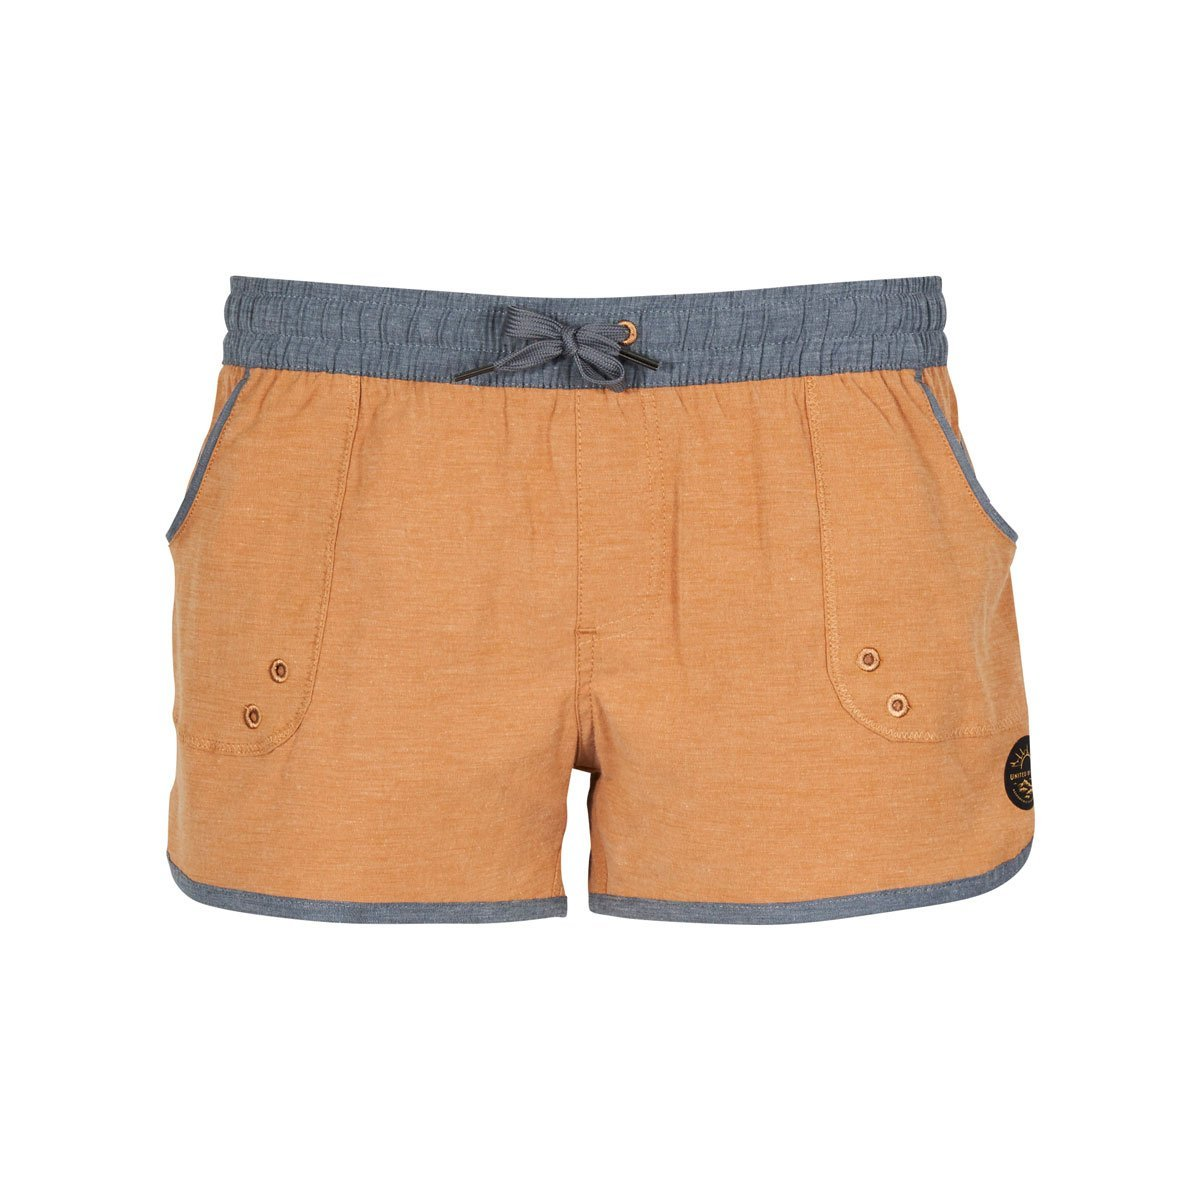 United By Blue | Women's Classic Board Shorts | Harvest Gold, Orange